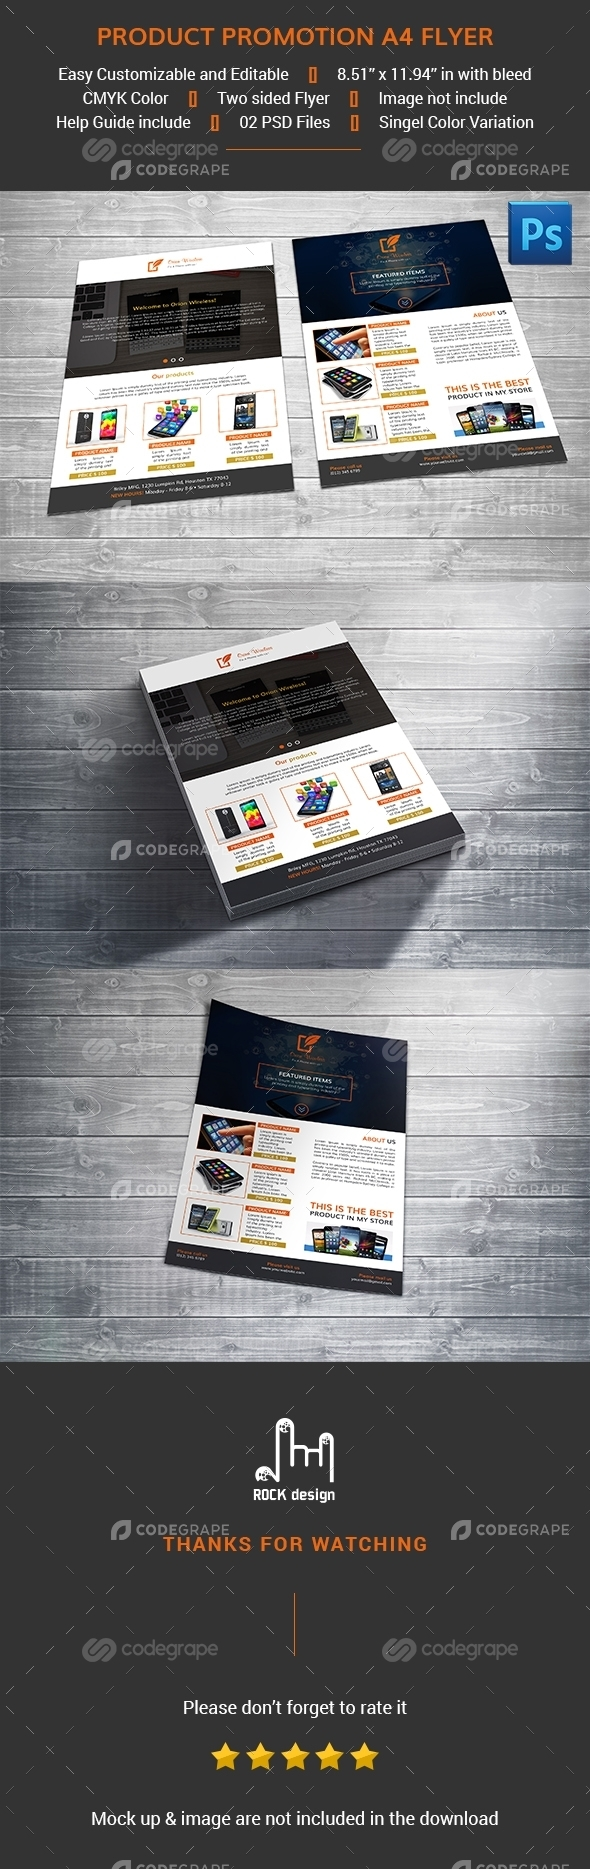 Product Promotion A4 Flyer (Two Sided)